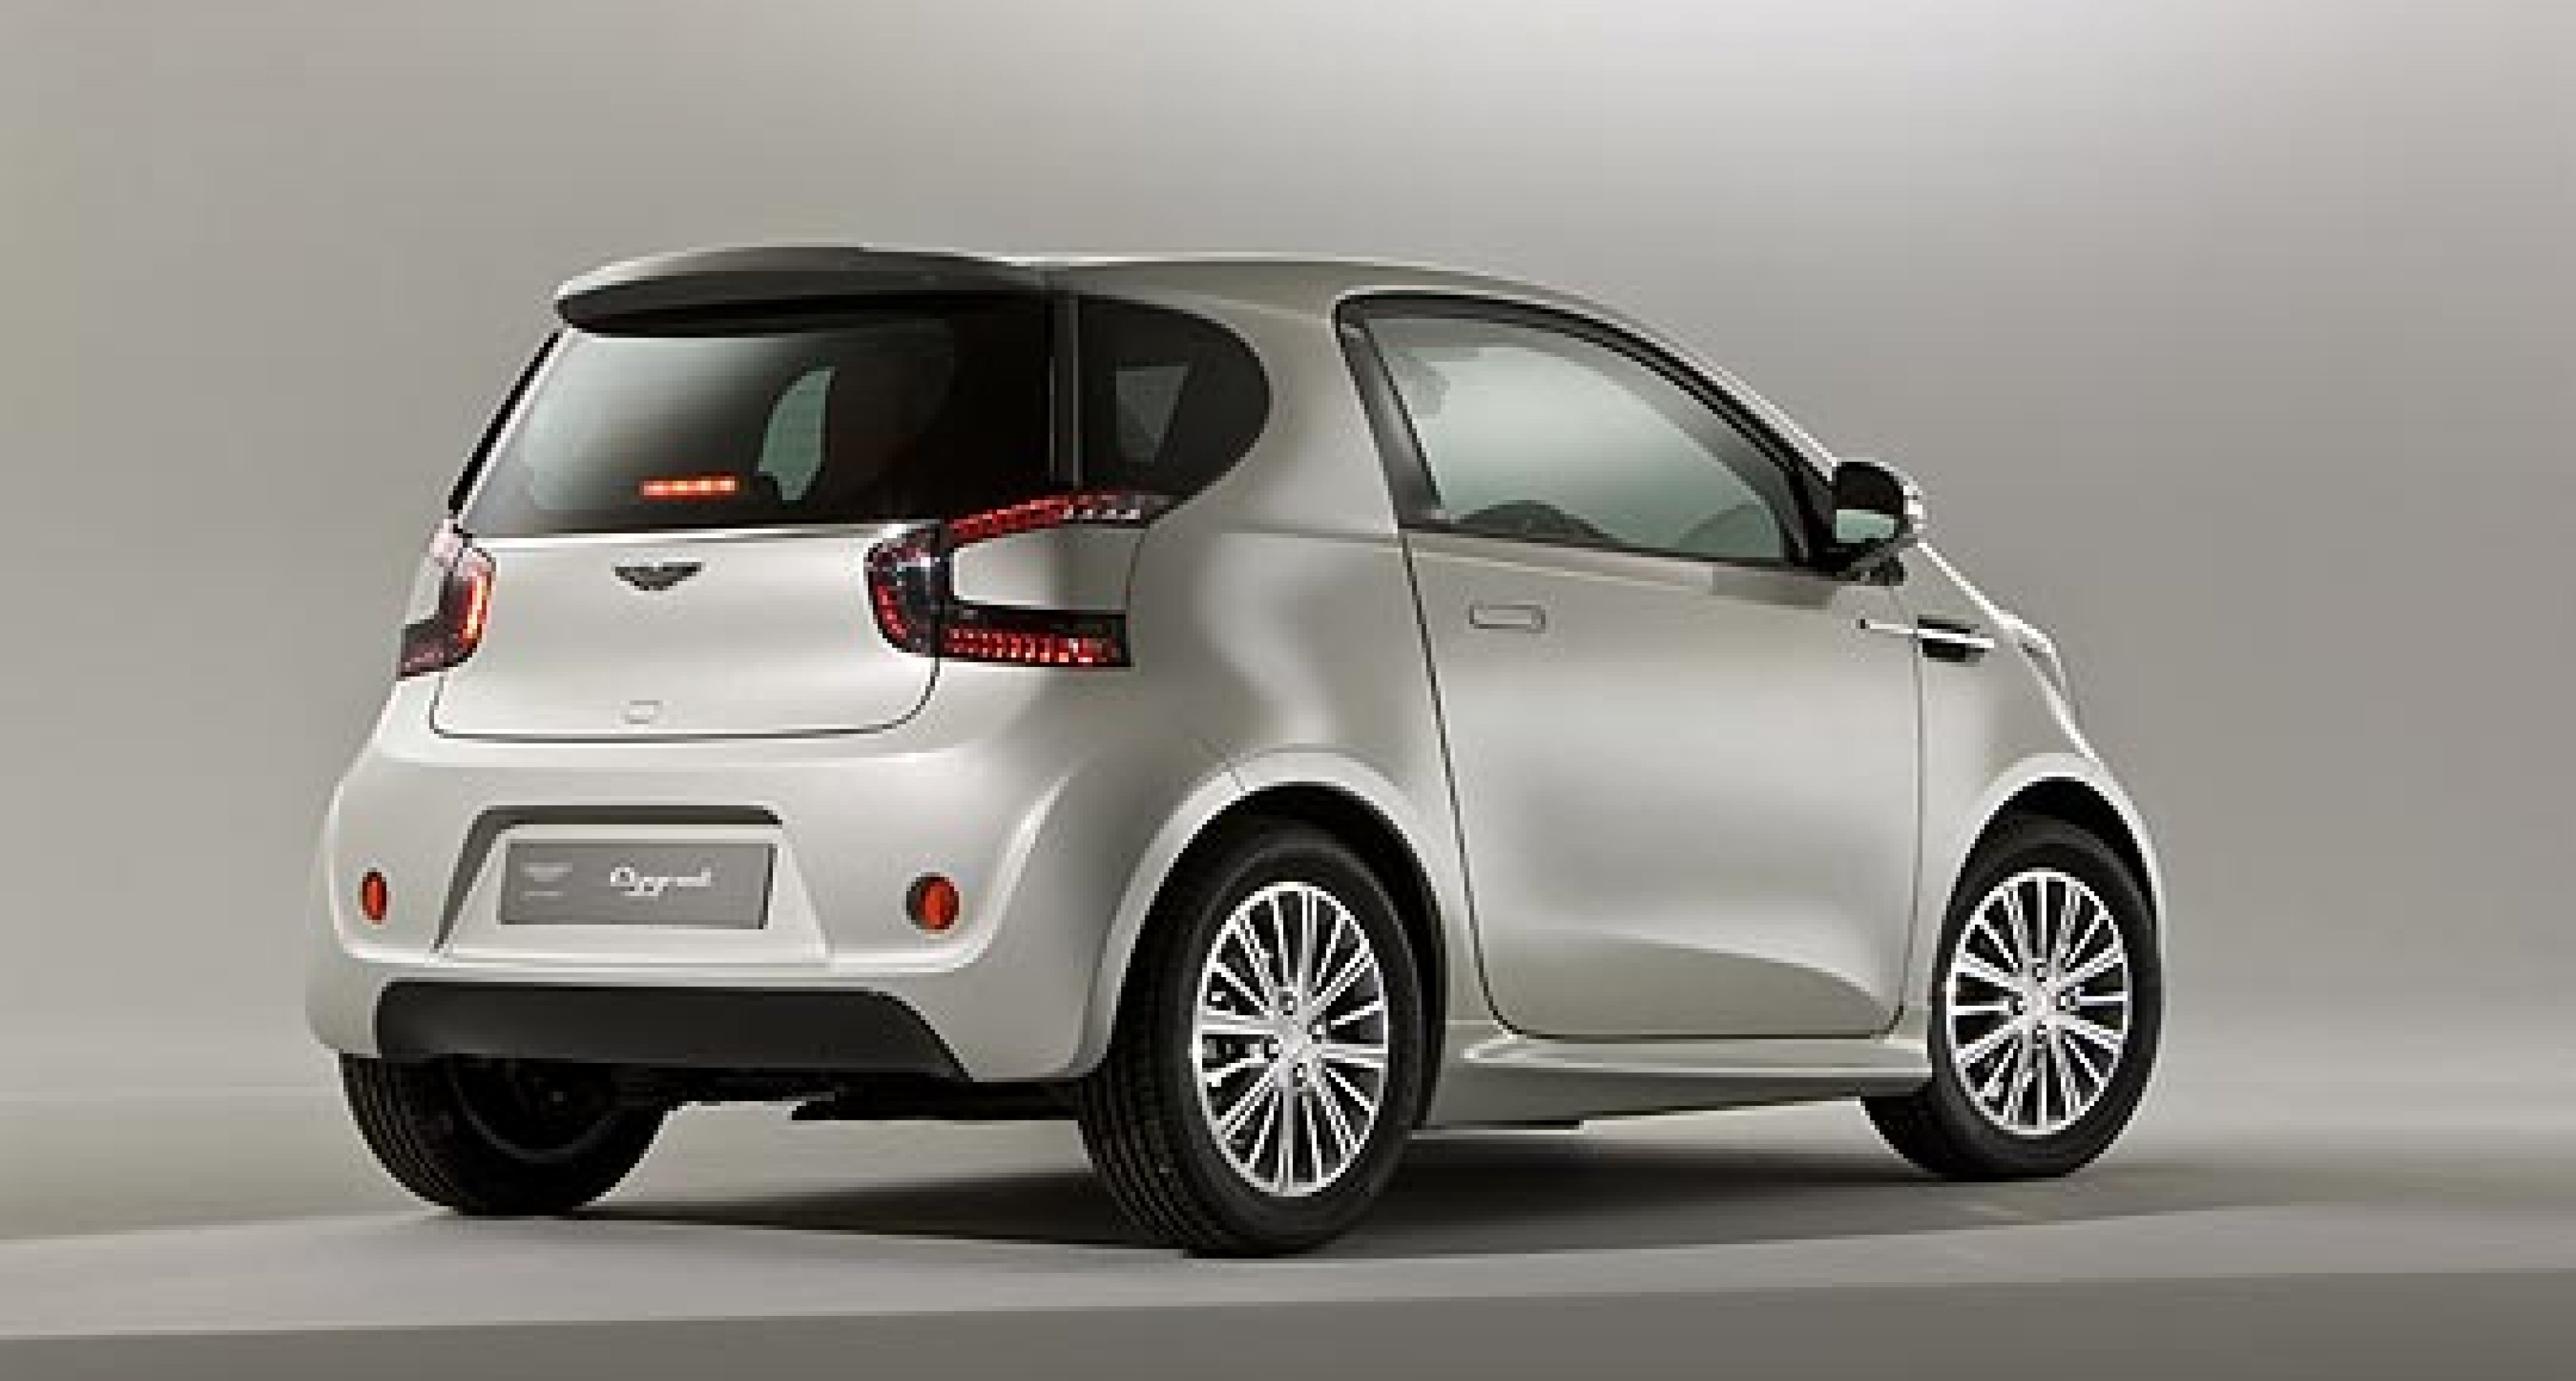 Aston Martin Cygnet: Now in the Metal